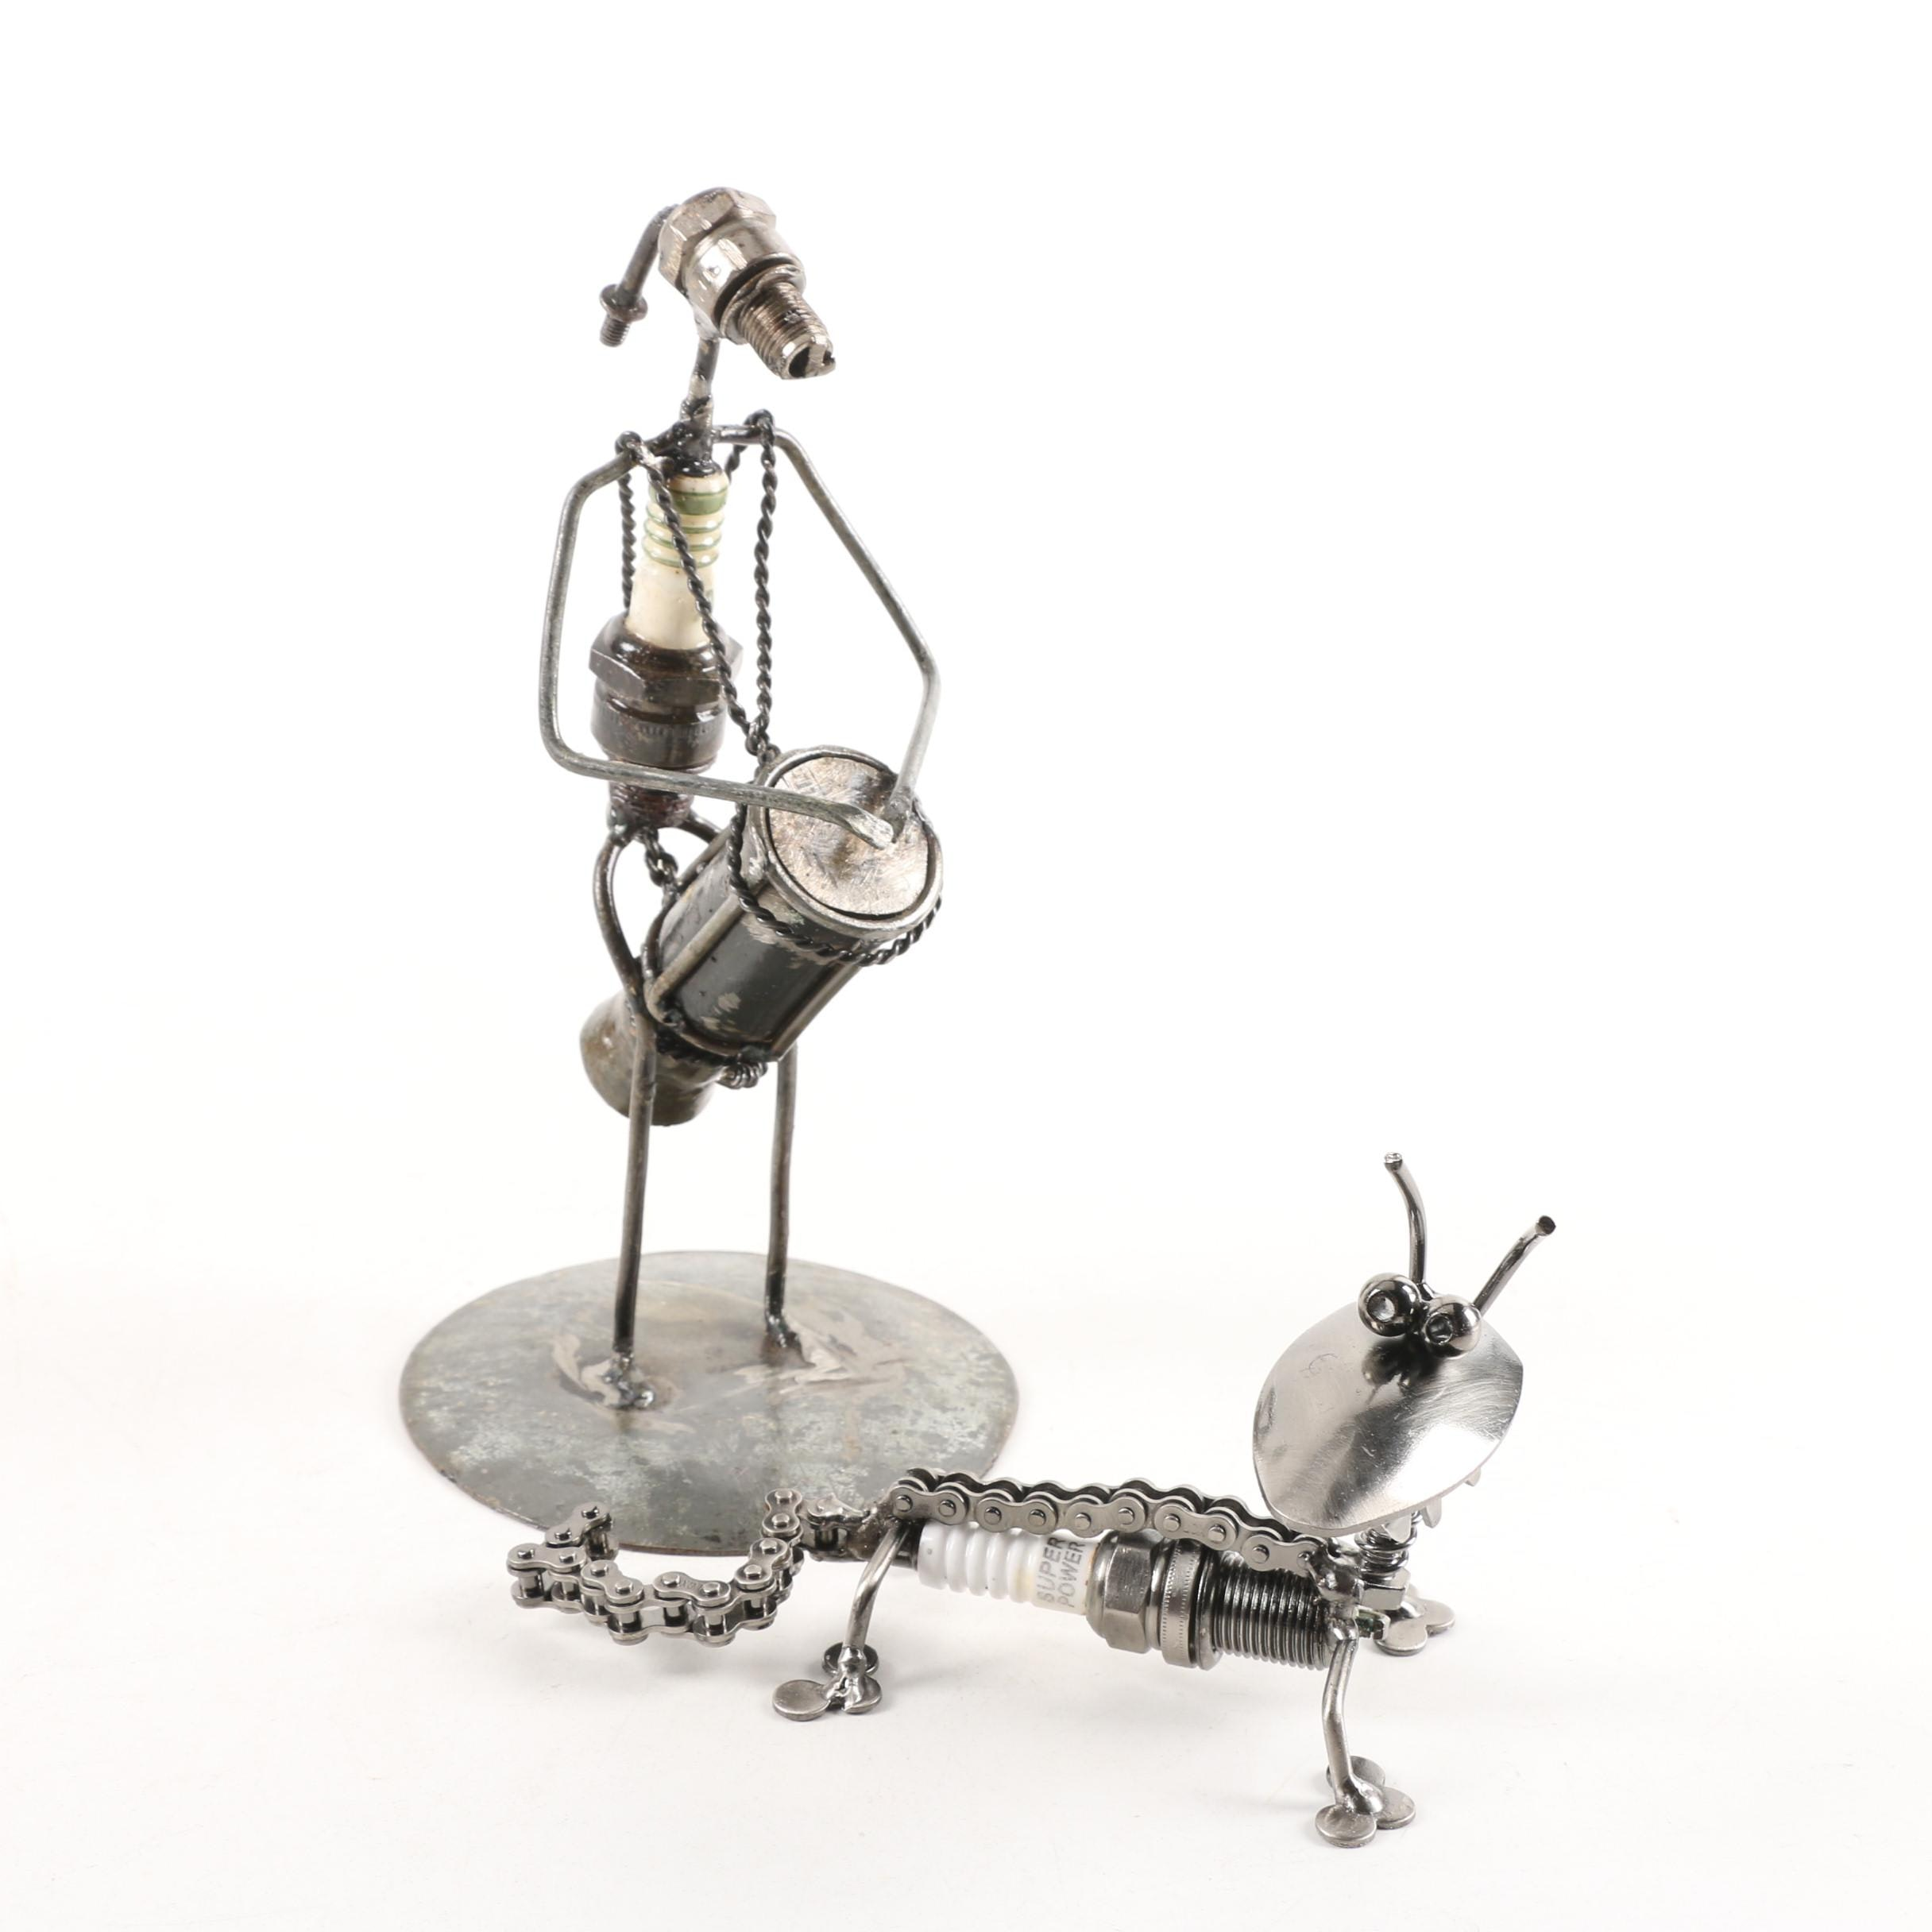 Repurposed Metal Sculptures of Drummer and Animal Figures